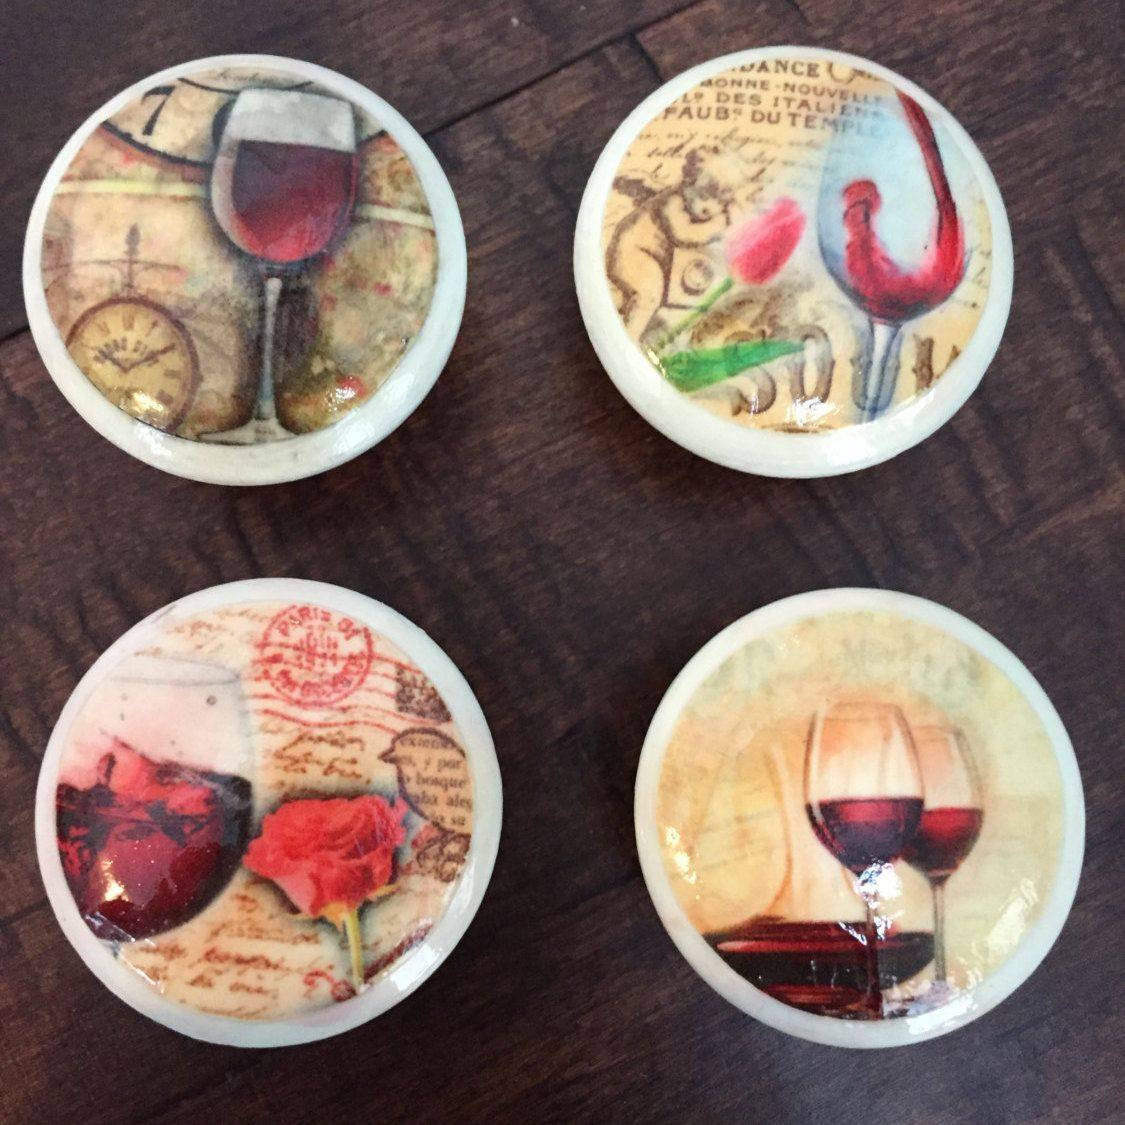 1.5 Inch Wine Themed Cabinet Knobs, Drawer Pulls By HolyChicBoutiqueCo On  Etsy Https:/